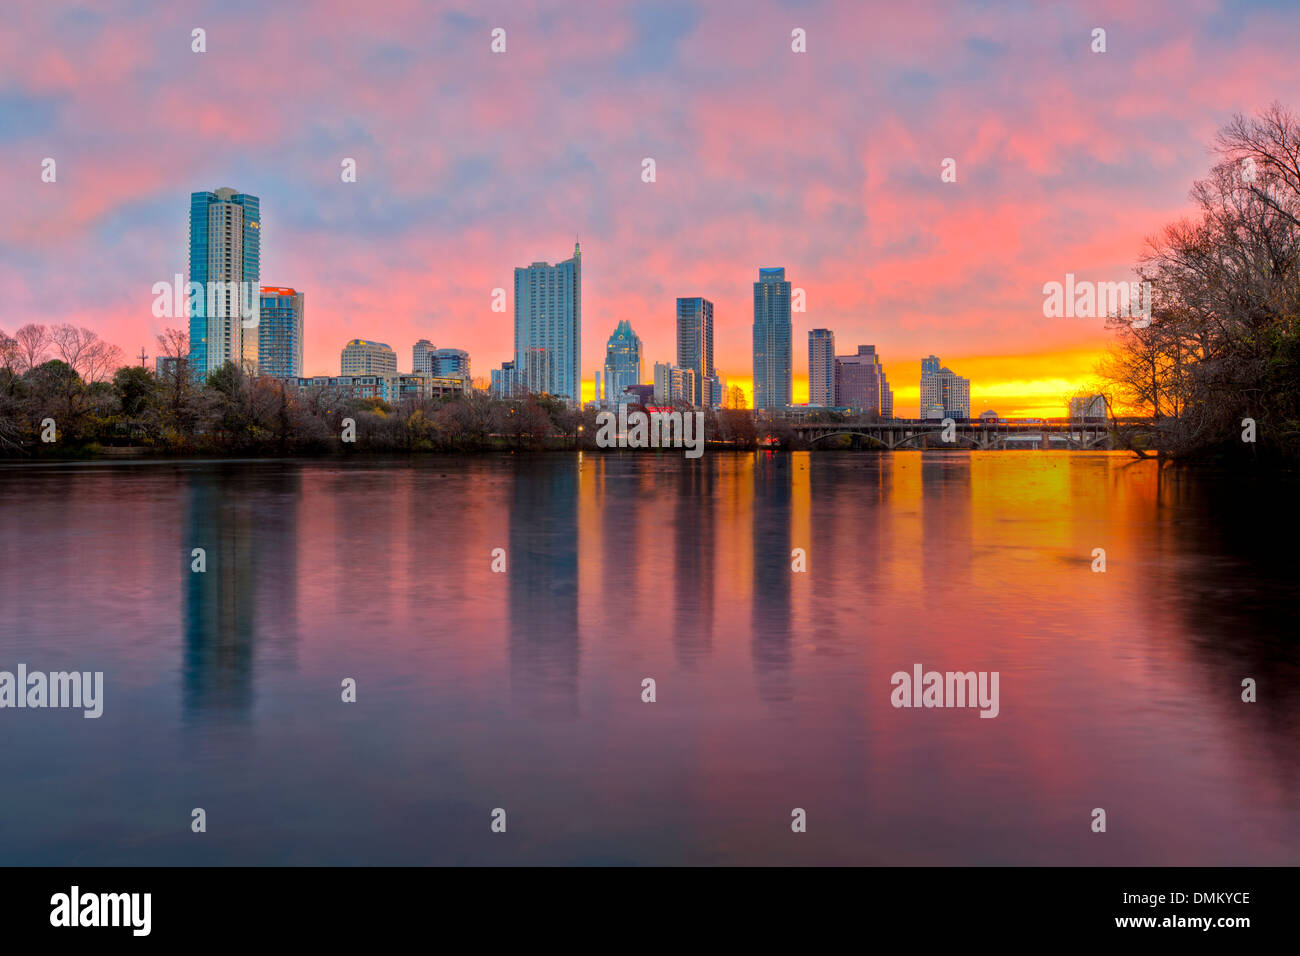 The Austin skyline is reflected in the waters of Lady Bird Lake on an early morning sunrise. - Stock Image